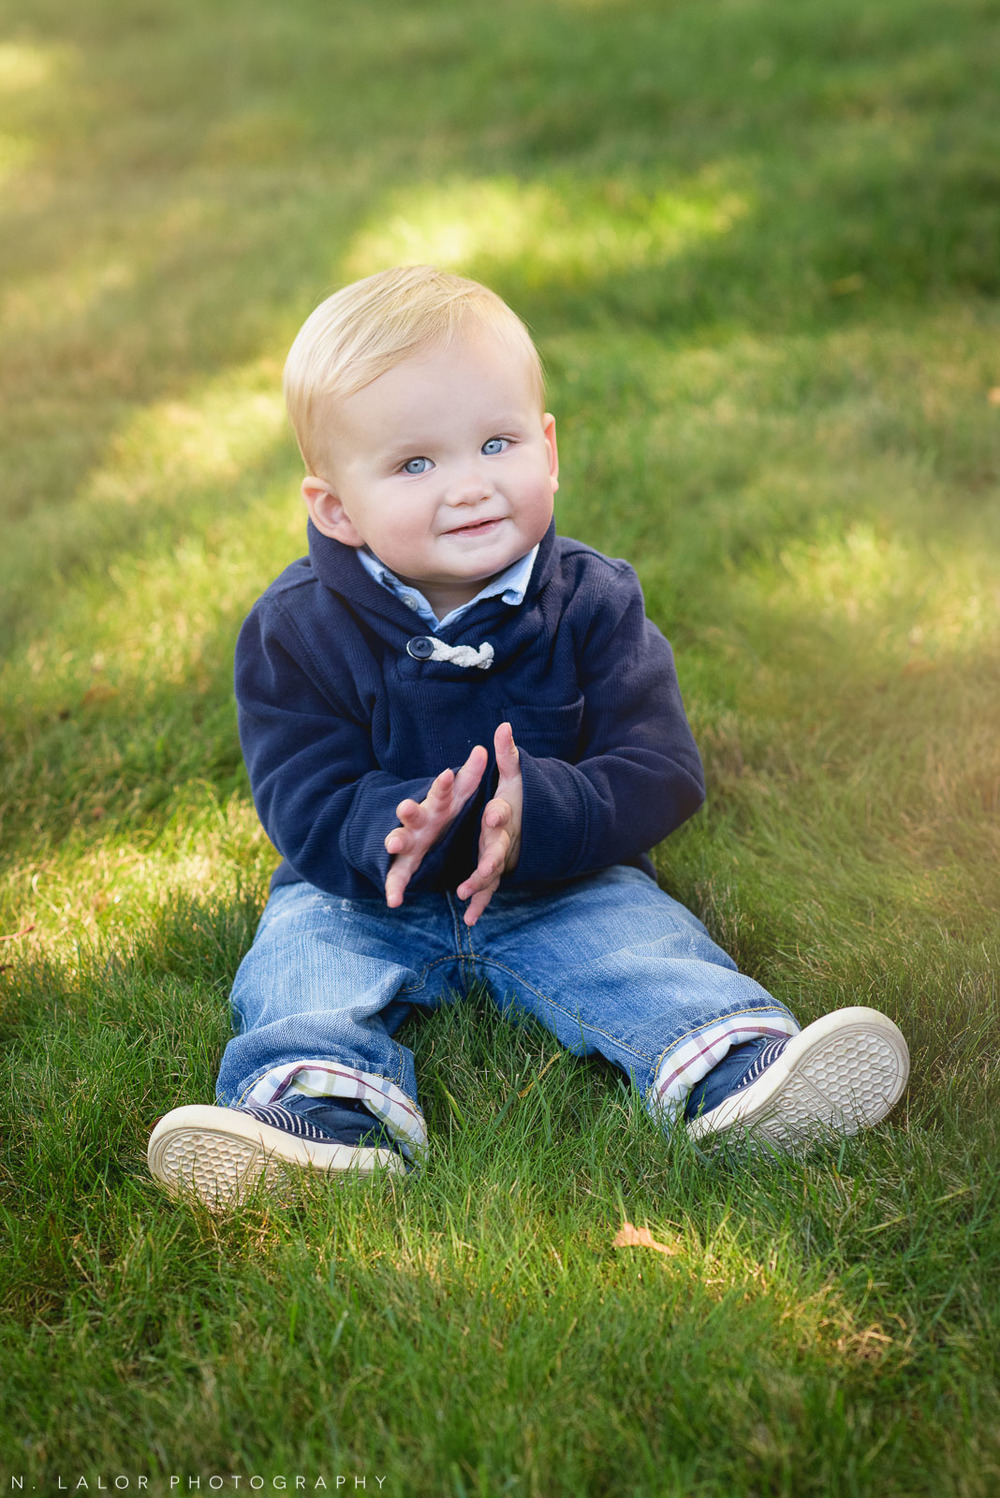 Adorable 1-year old boy sitting on grass. Lifestyle portrait by N. Lalor Photography. Fairfield, CT.